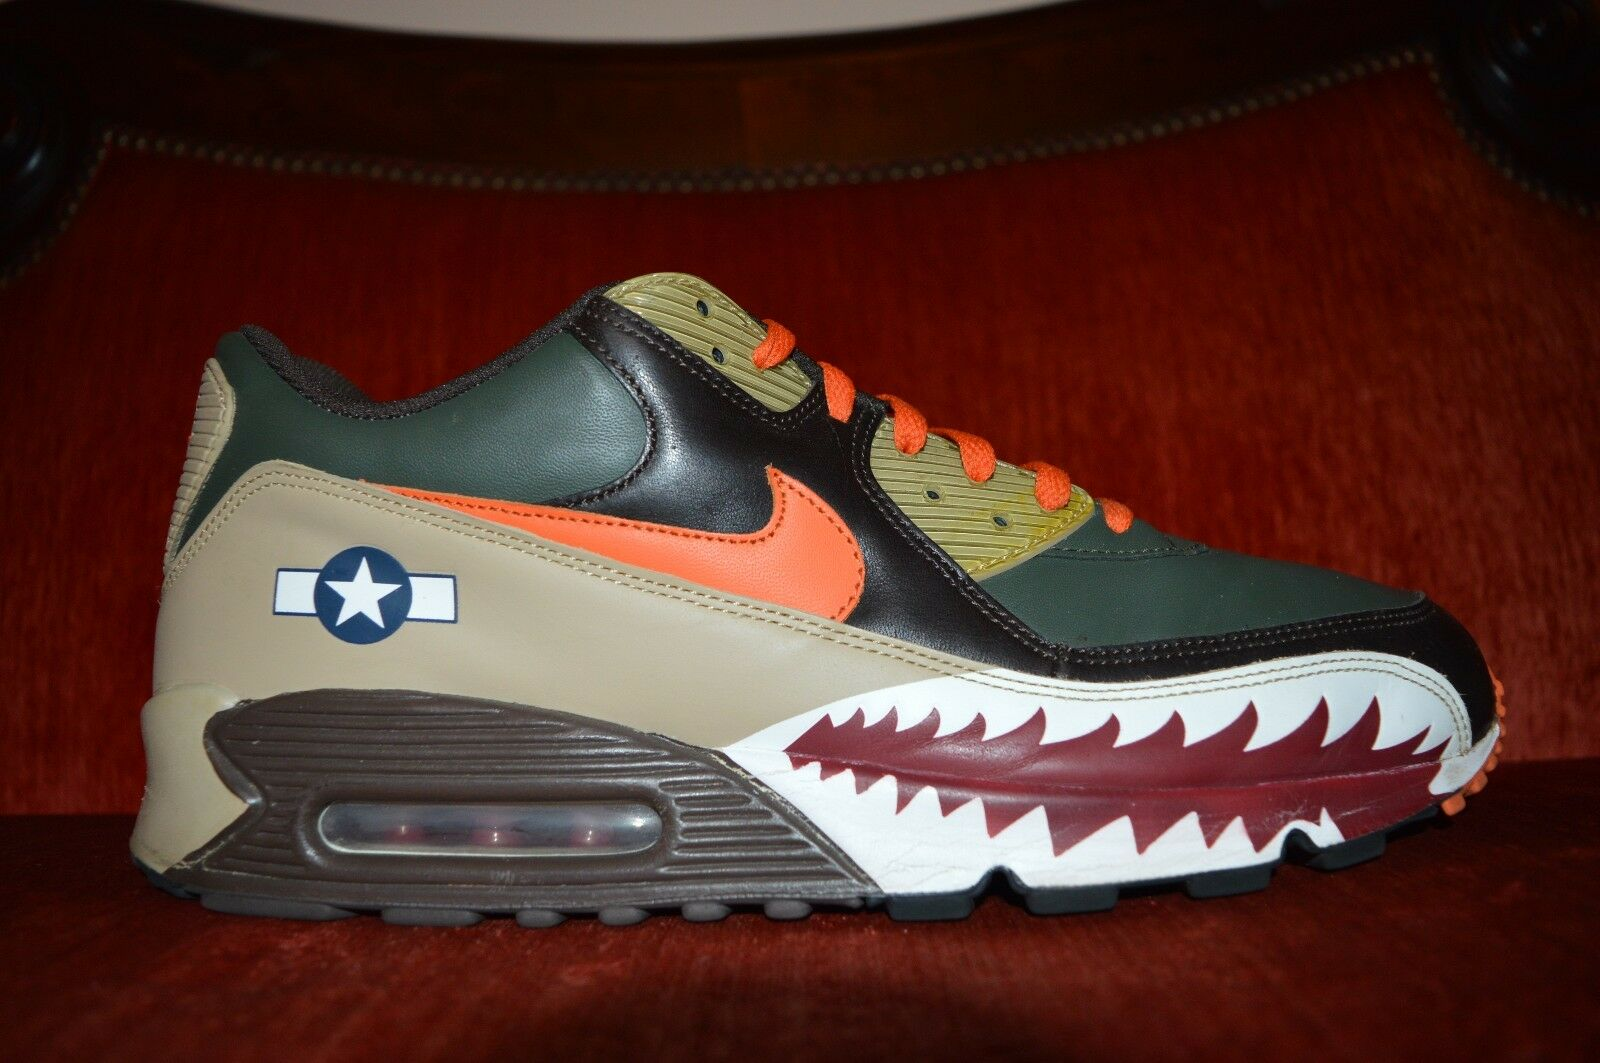 Nike Air Max 90 Premium Warhawk Armed Forces 315728-381 Size 13 8.5 10 Condition